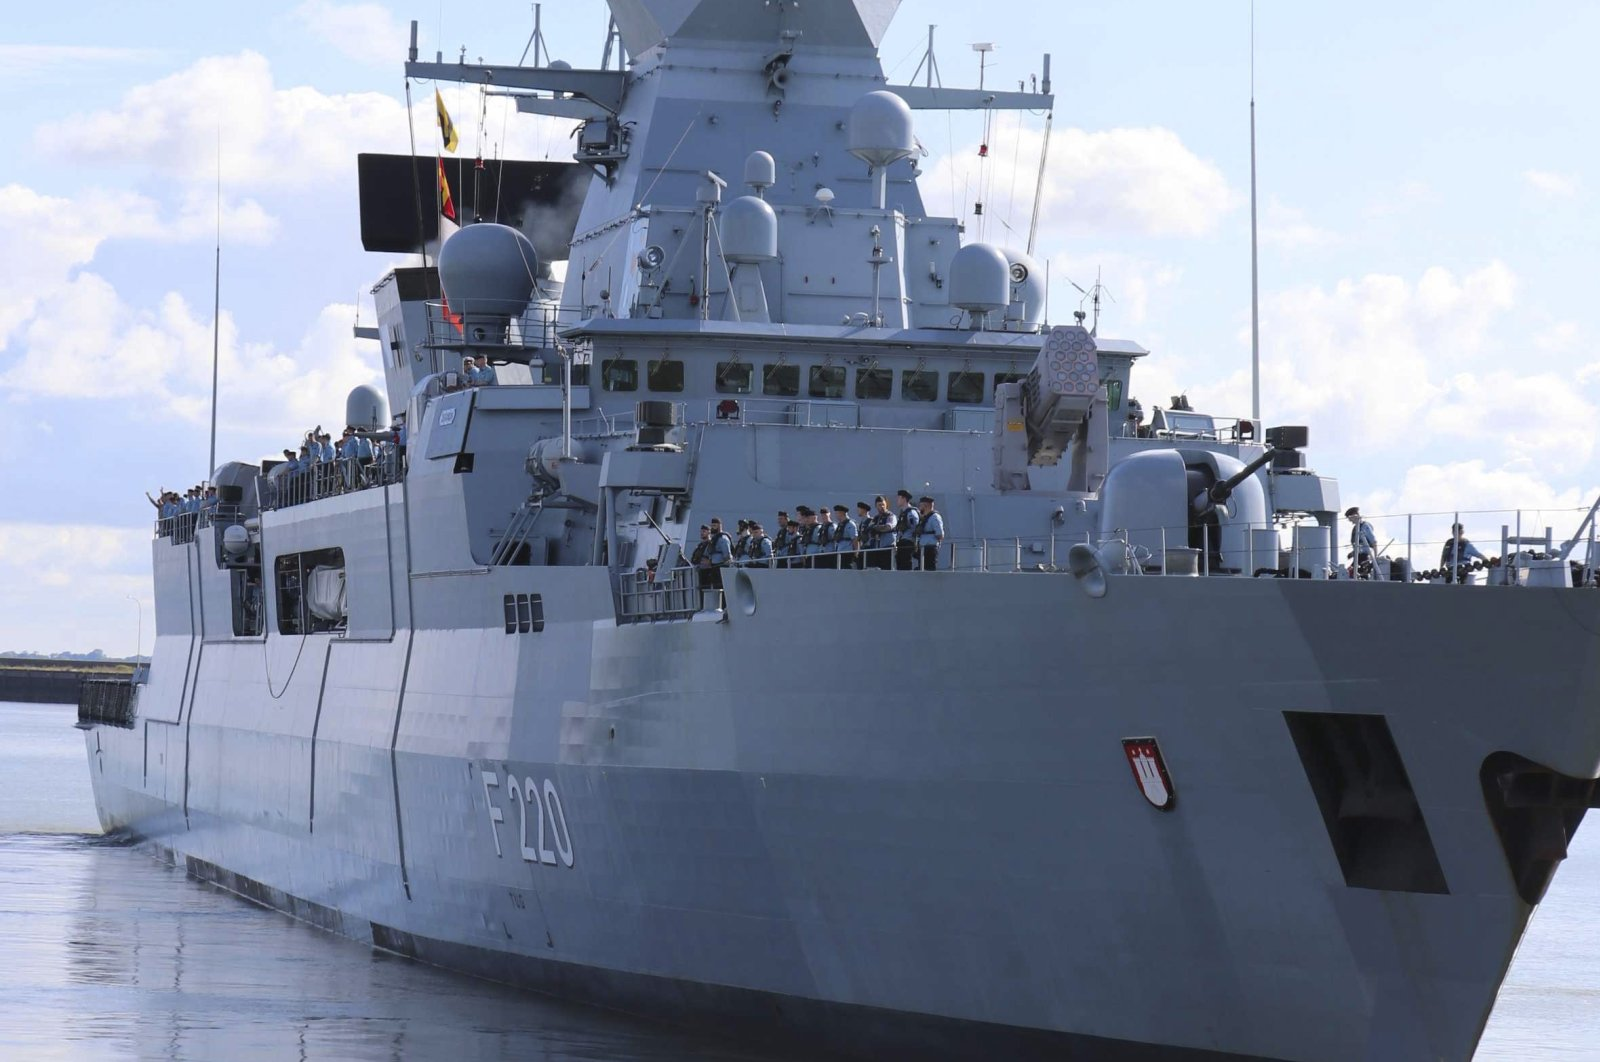 German frigate Hamburg, which is taking part in Operation Irini, on Sept. 11, 2020 (File Photo)